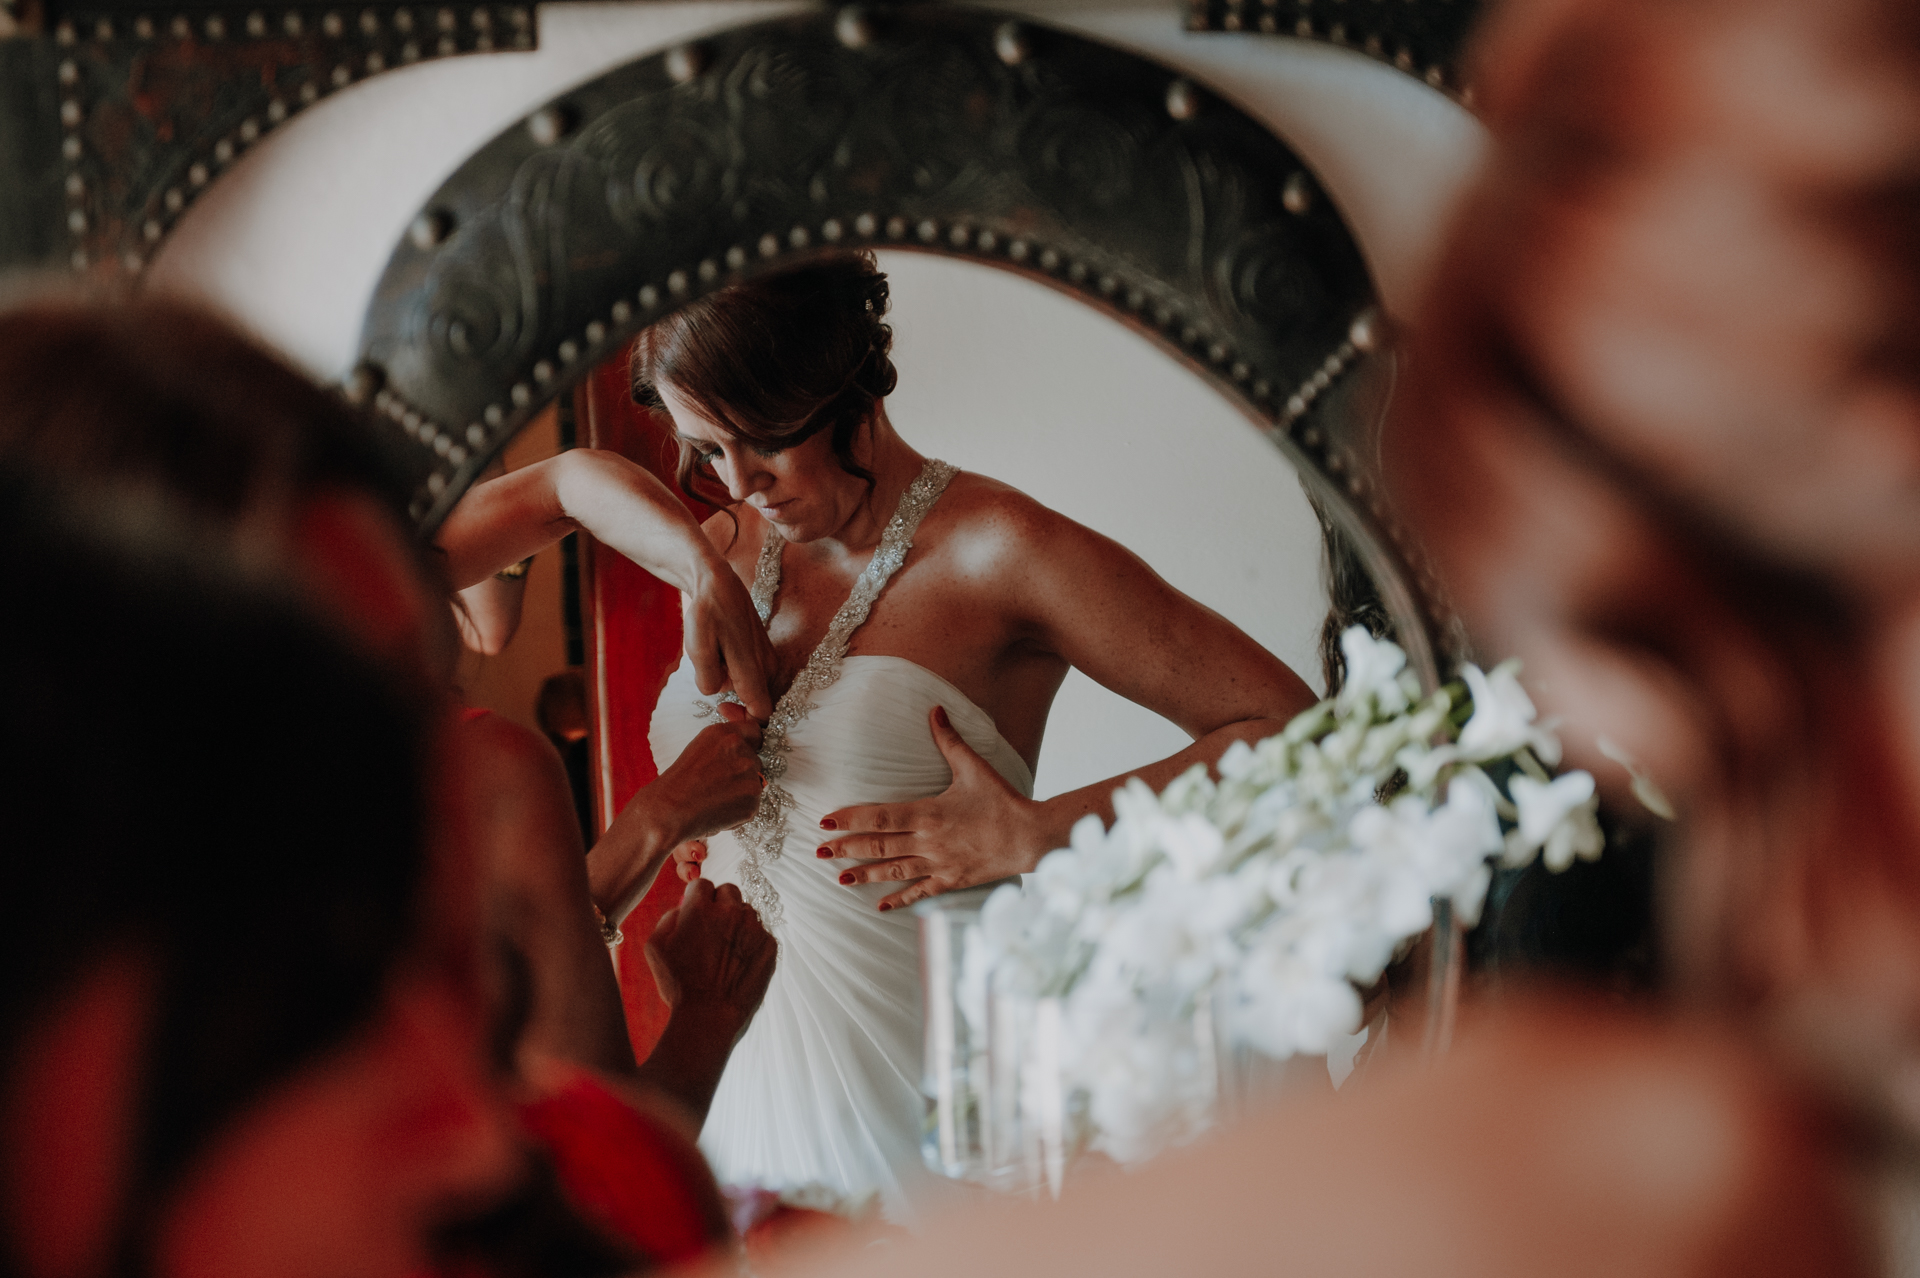 Quinta do Valle do Riacho, Merceana Wedding Photo | The bride works on a few final touches to her dress